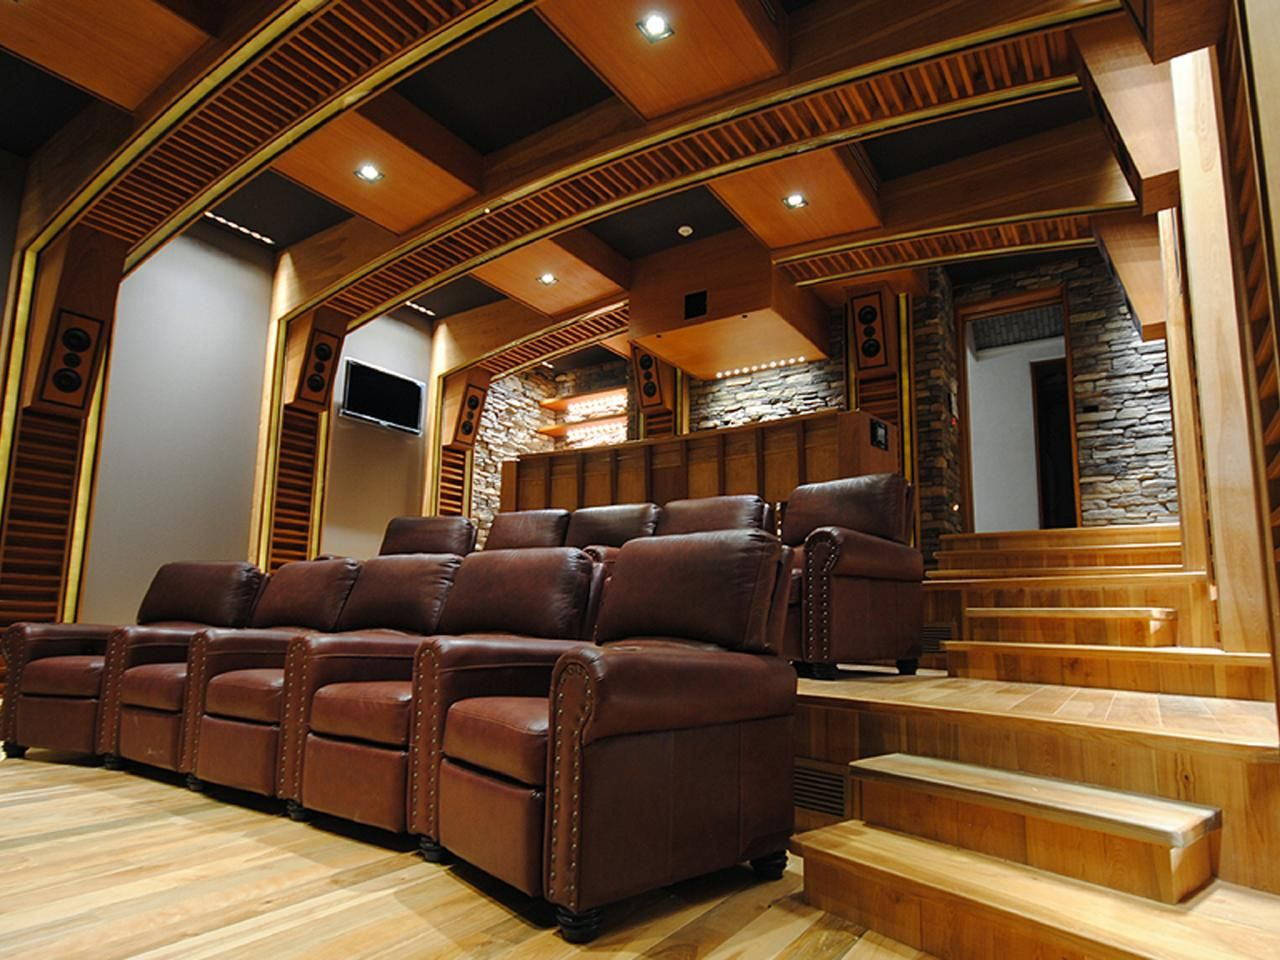 Media Room With Stadium Seating Home Theater